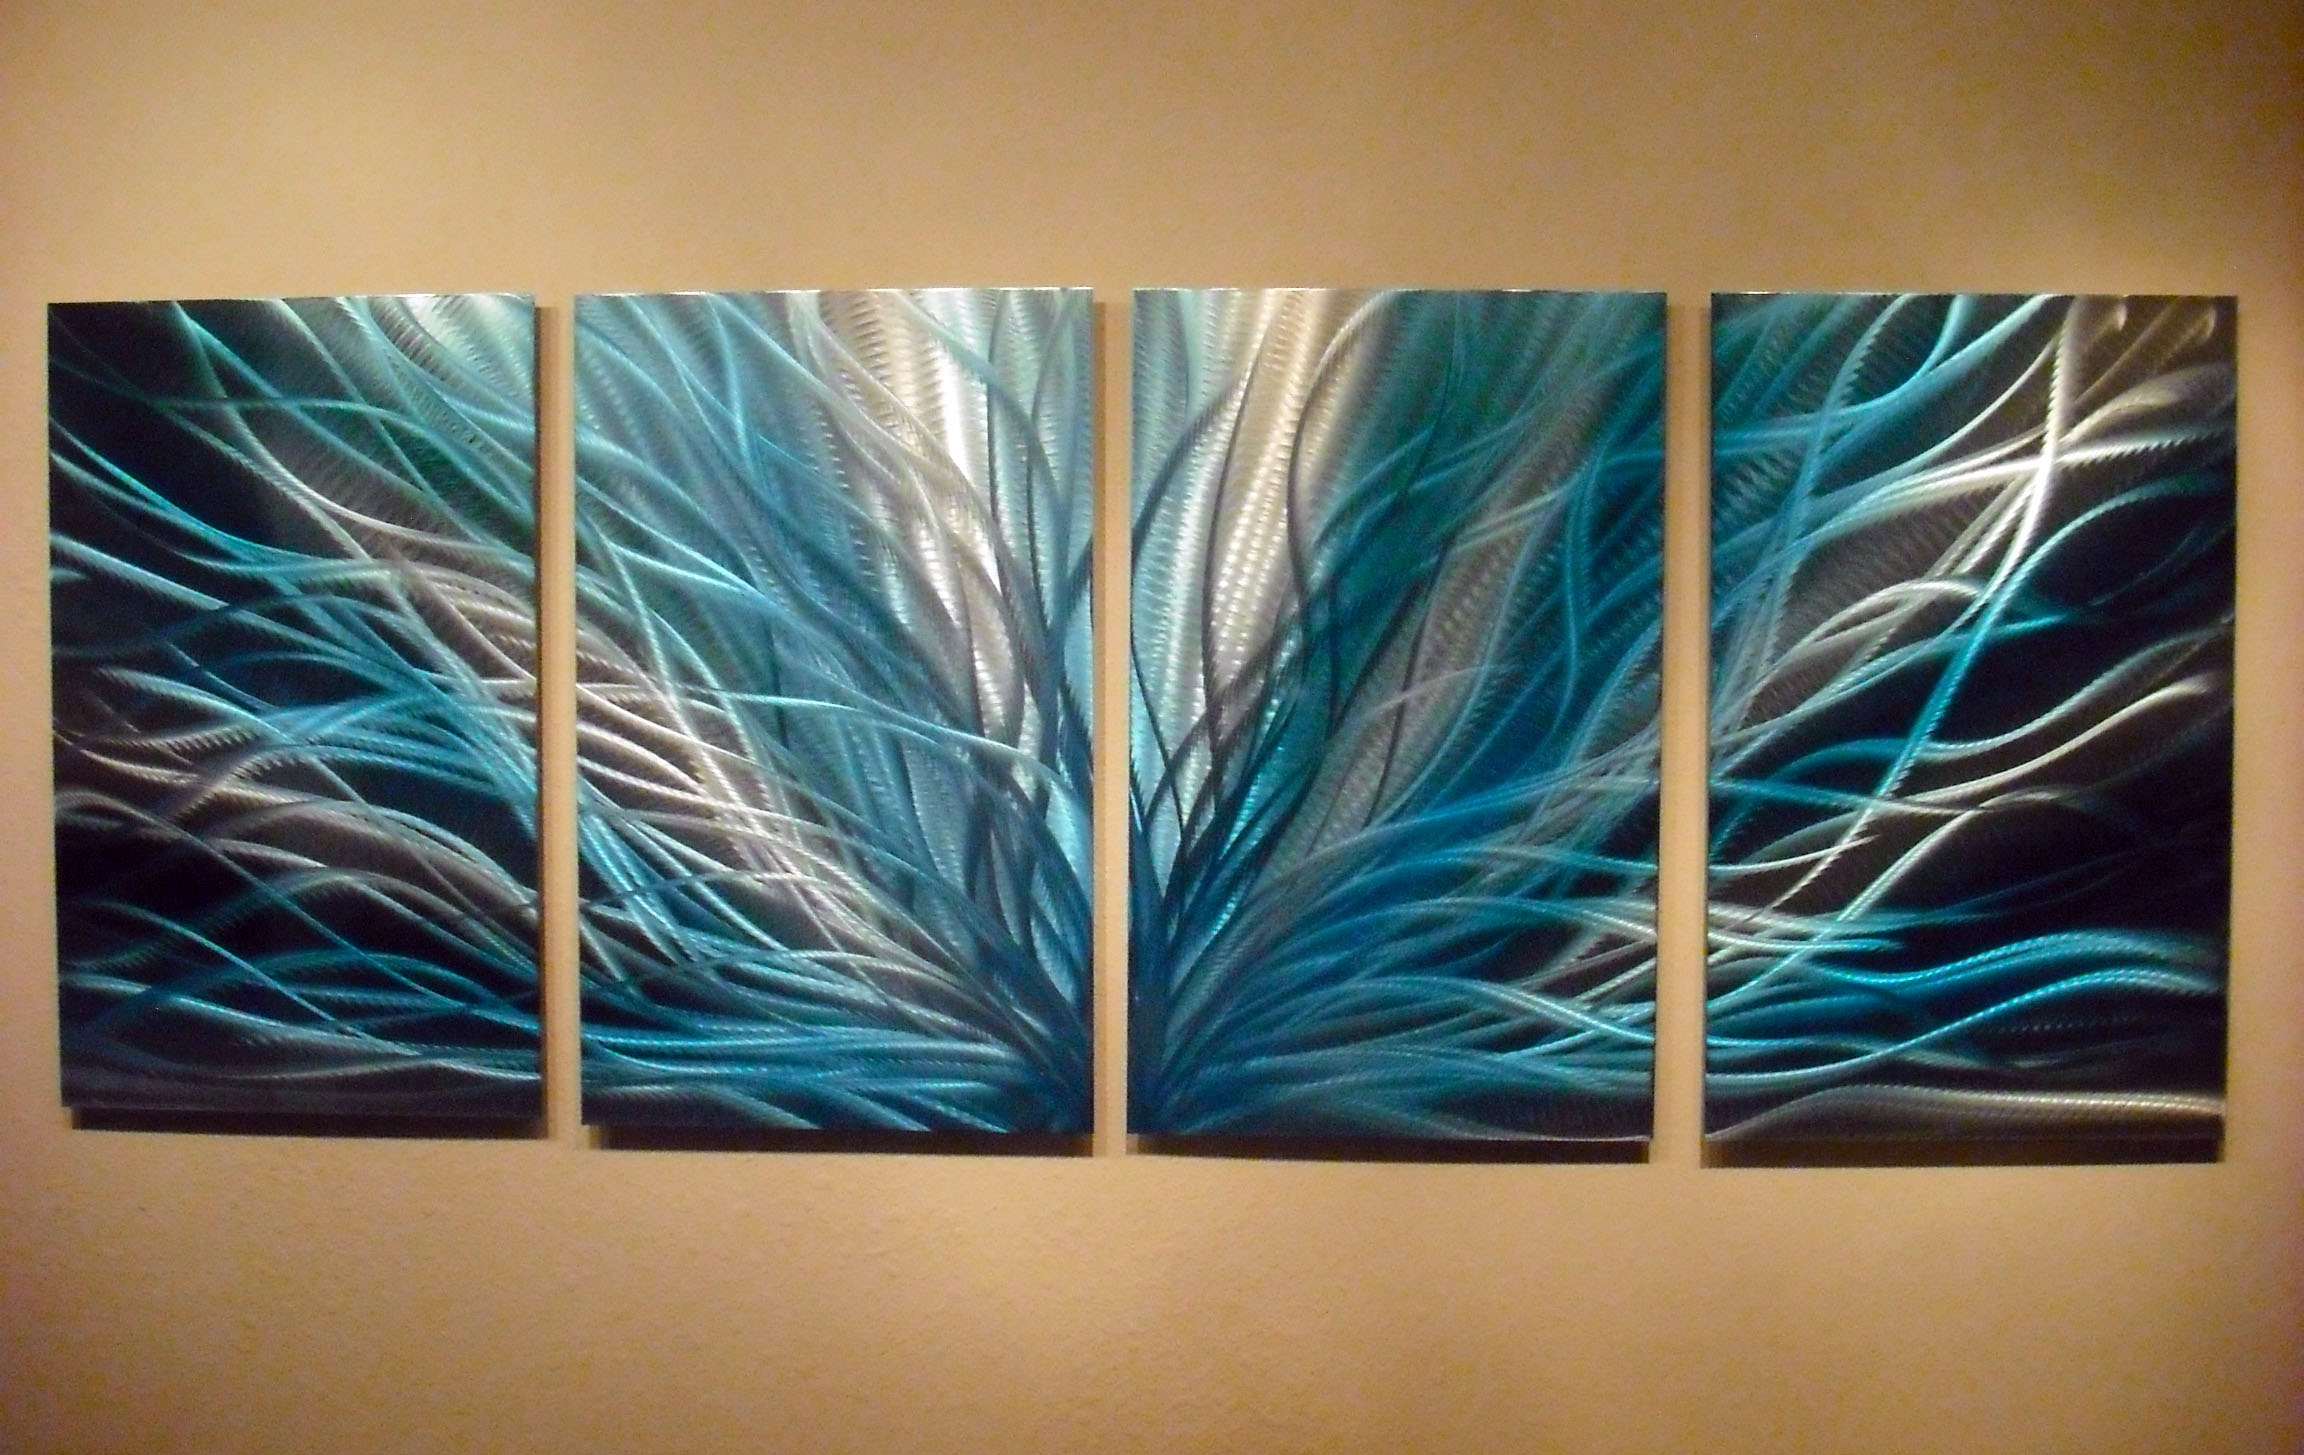 Newest Large Abstract Metal Wall Art Regarding Blue Vortex Epic Extra Large Abstract Metal Wall Artjon (View 10 of 15)